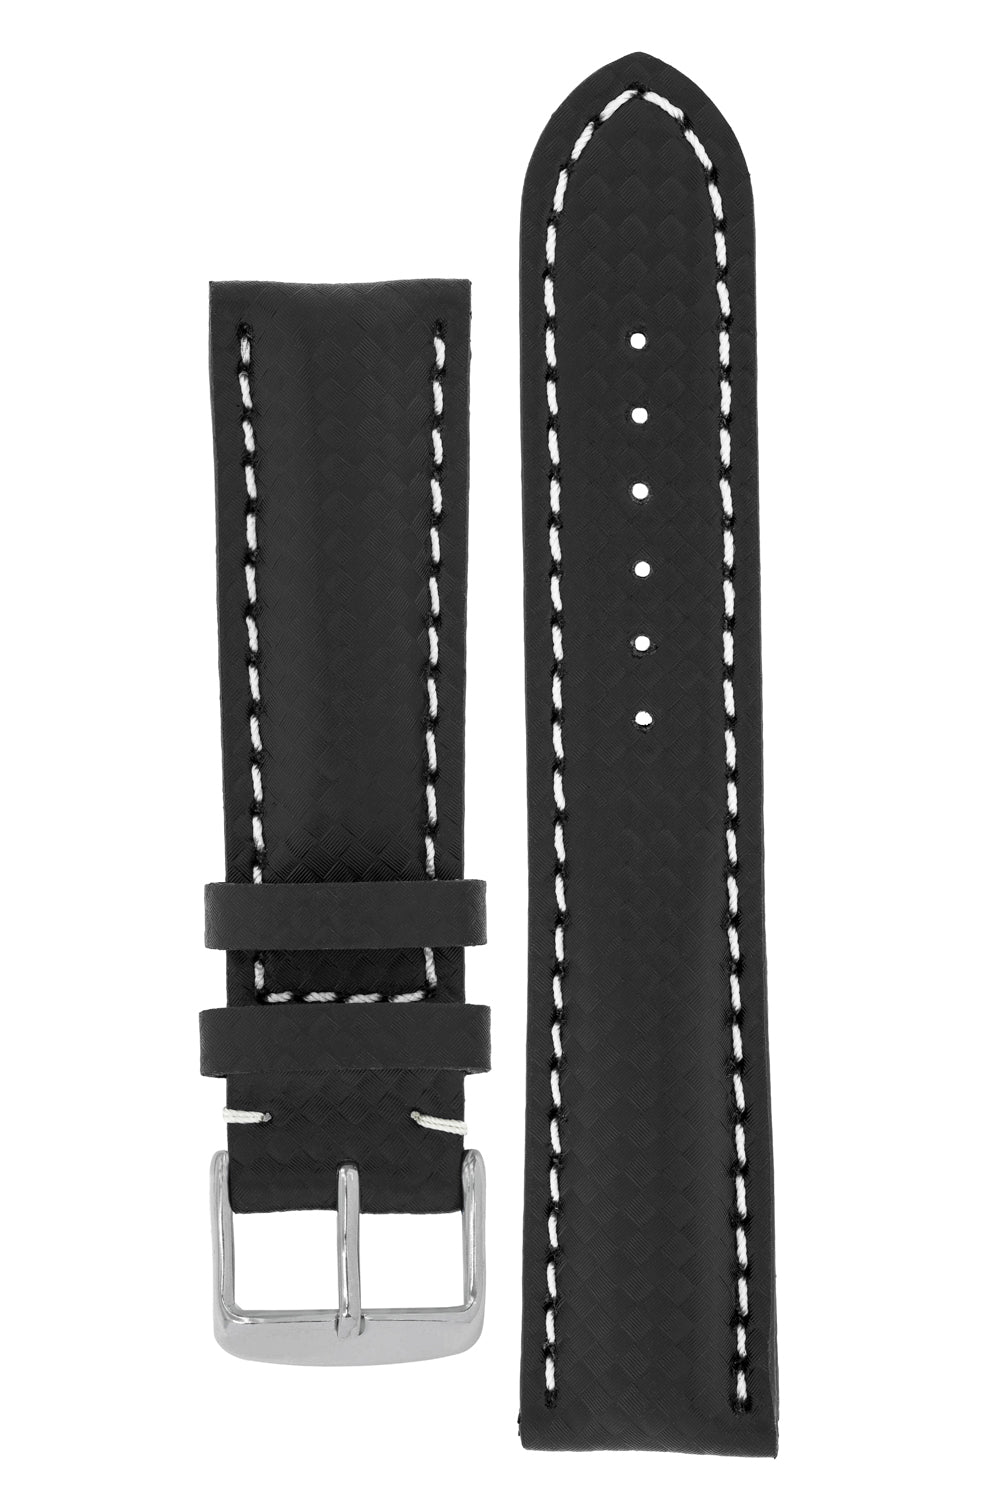 Breitling Style Carbon Leather Watch Strap and Buckle in BLACK